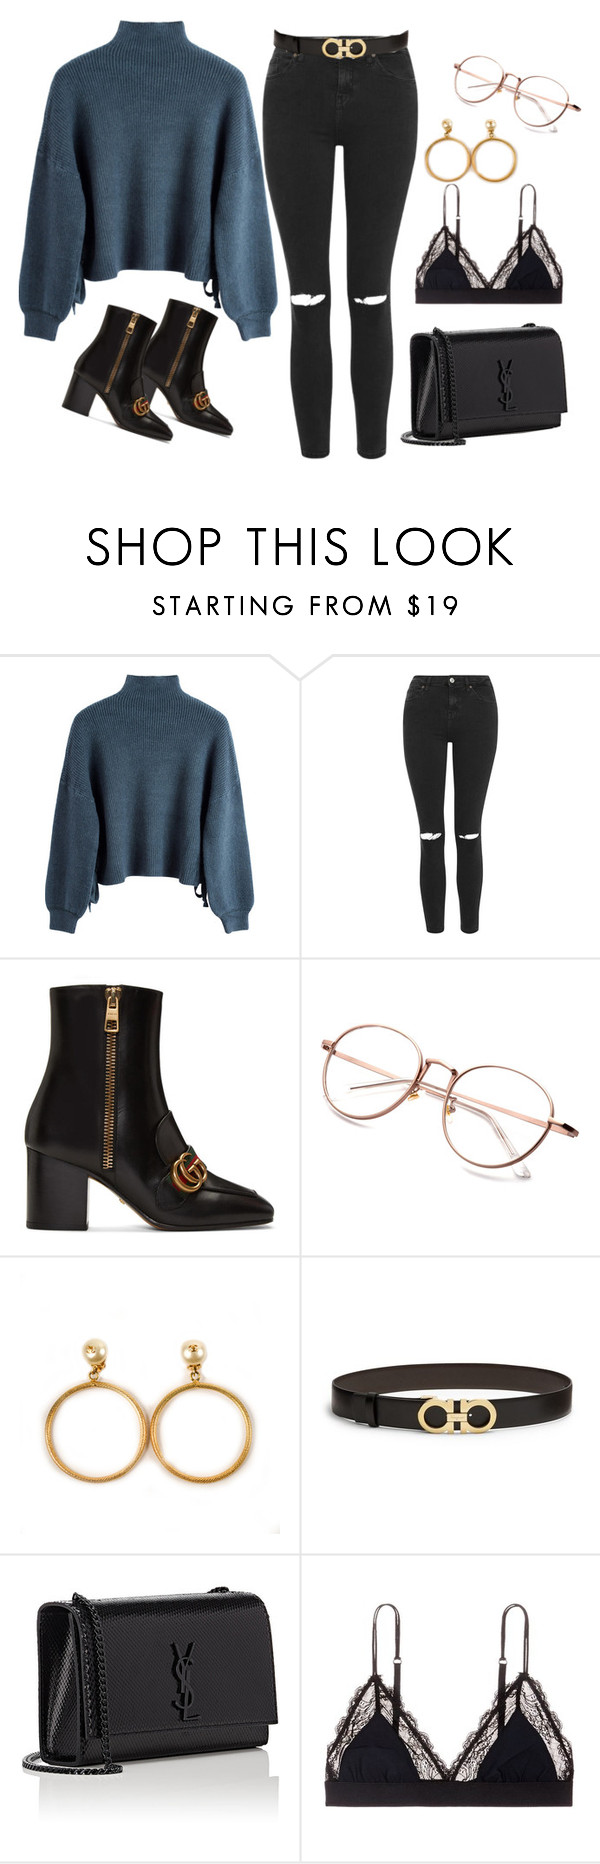 """Untitled #151"" by futurling ❤ liked on Polyvore featuring Topshop, Gucci, Chanel, Salvatore Ferragamo, Yves Saint Laurent and LoveStories"